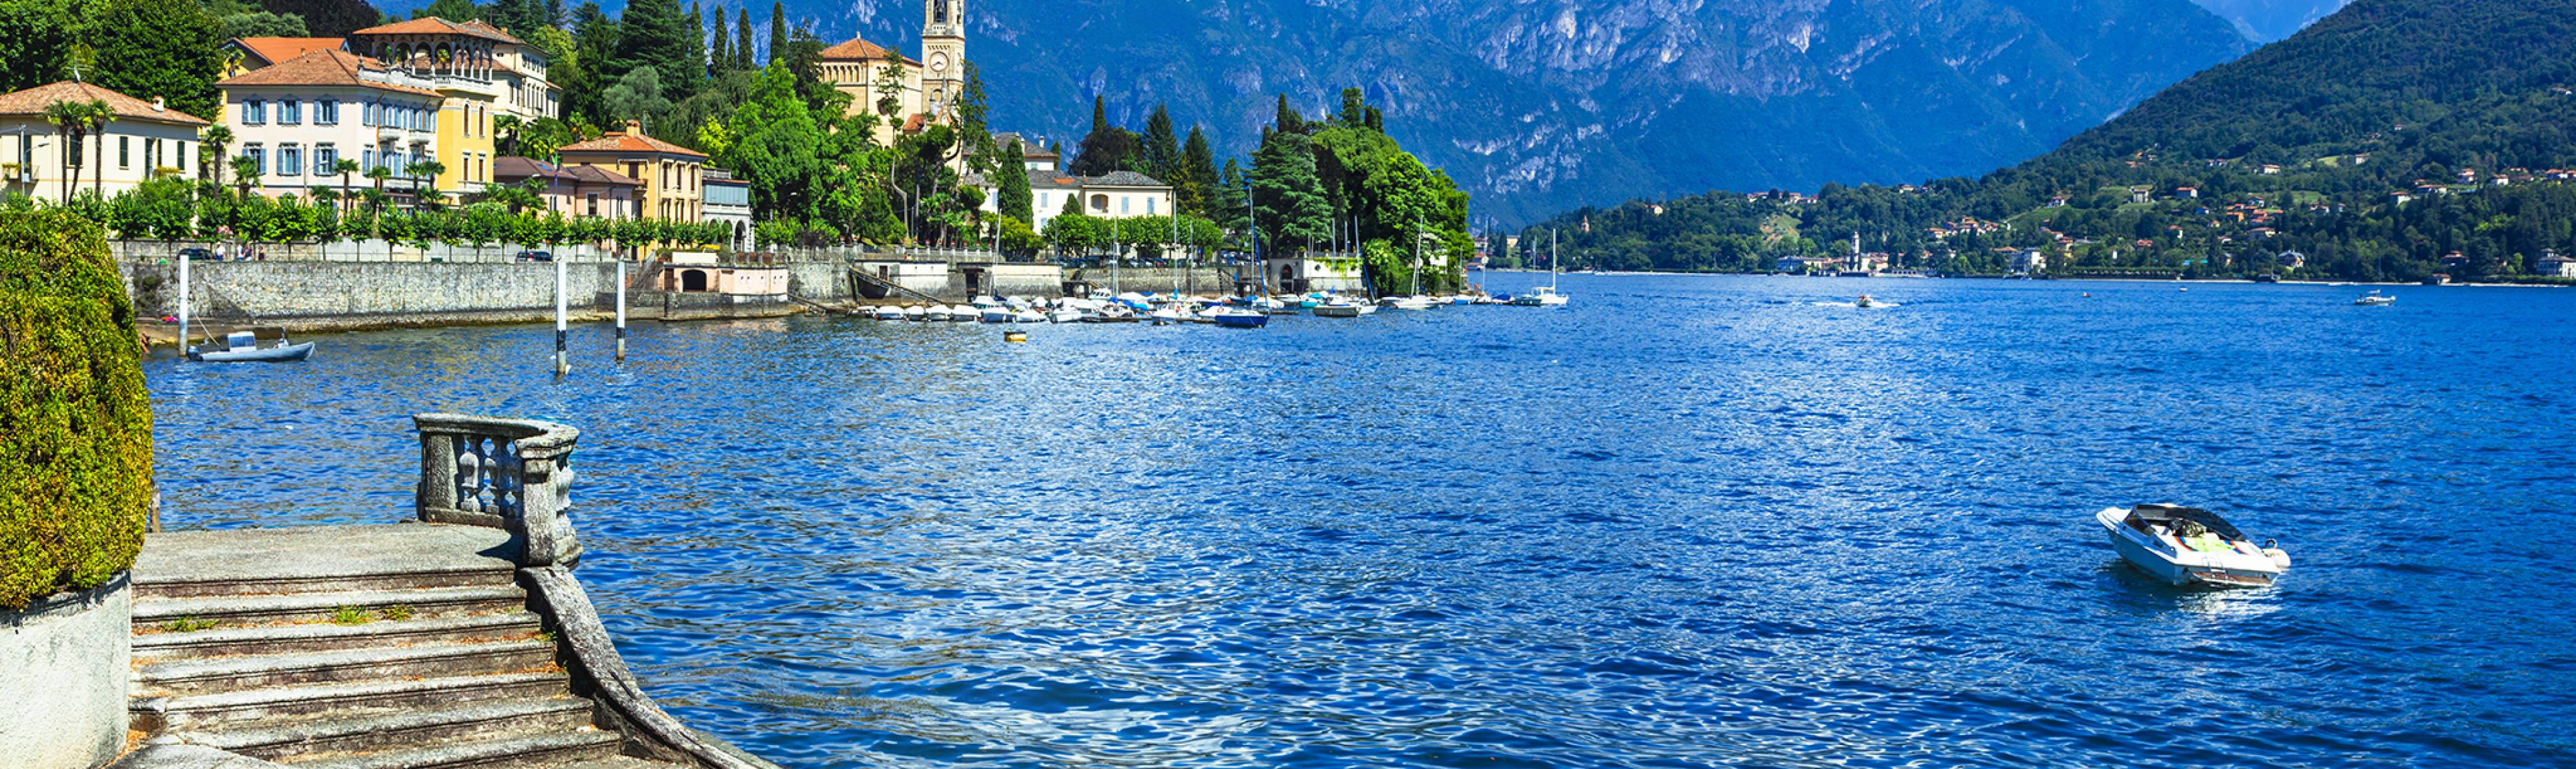 Looking onto brilliant blue waters of Lake Como Italy